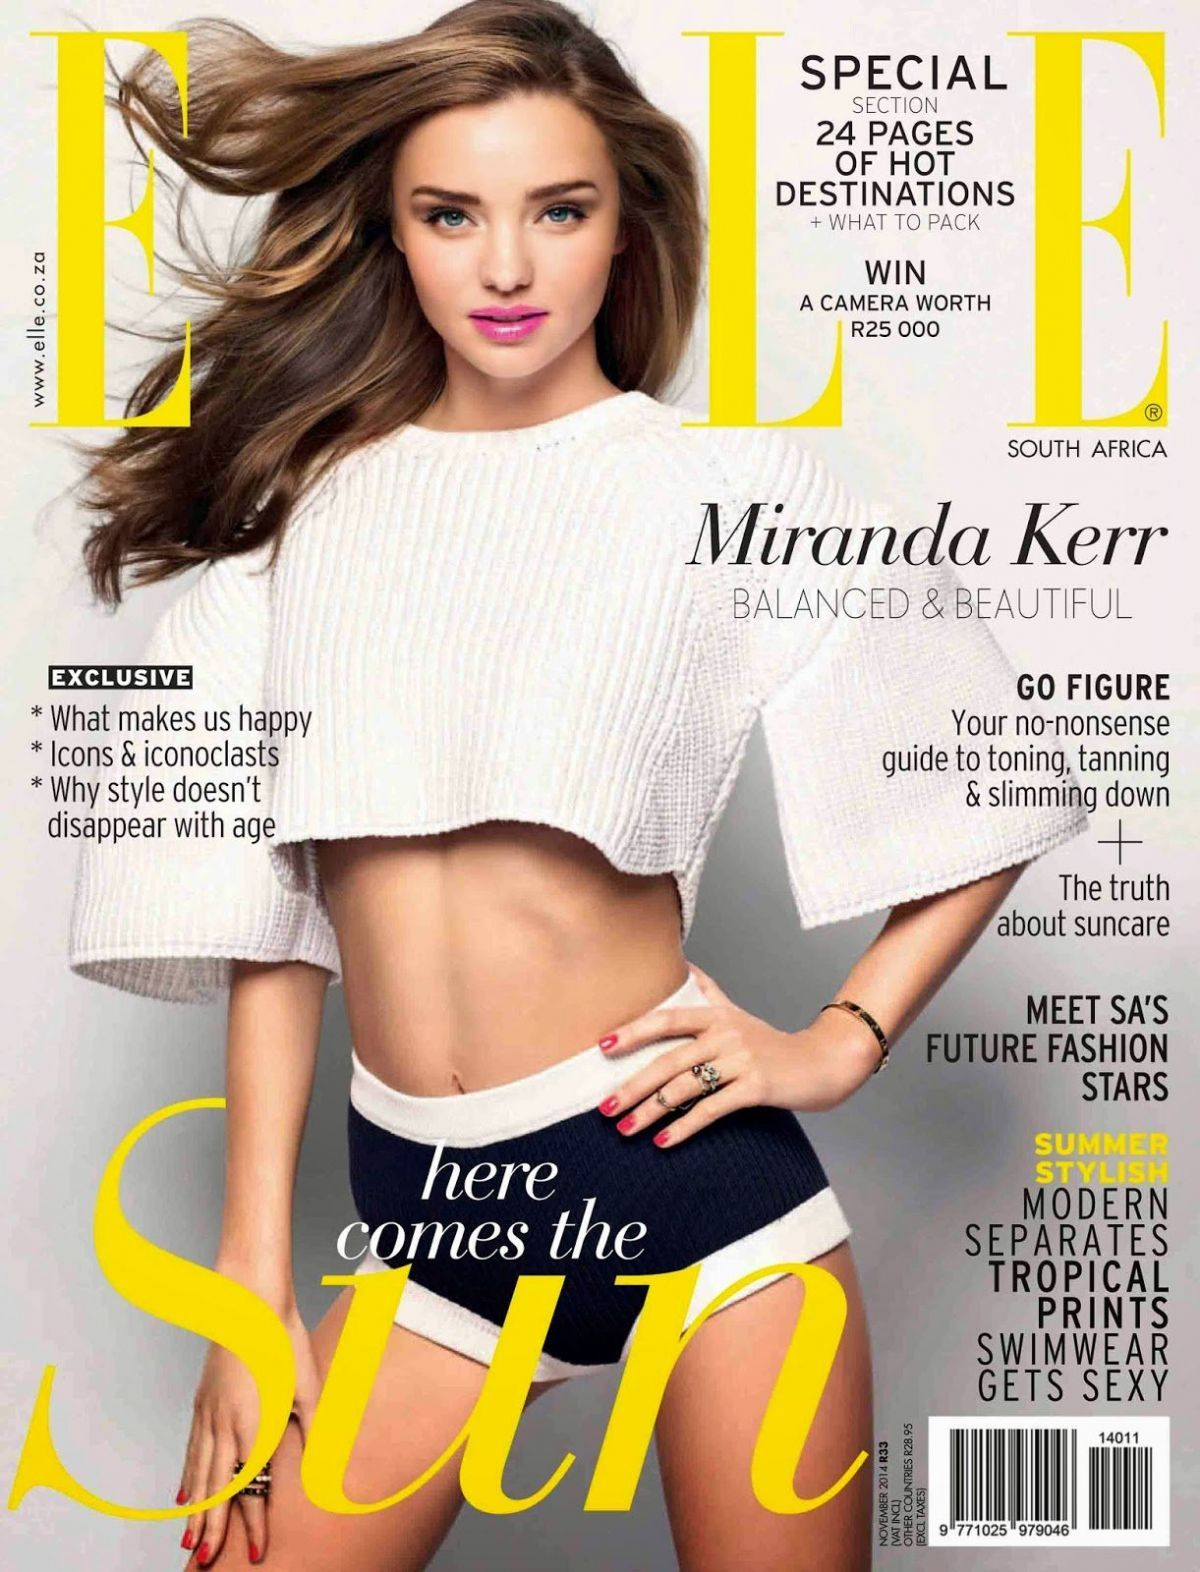 Miranda Kerr cover and story for ELLE Magazine South Africa…